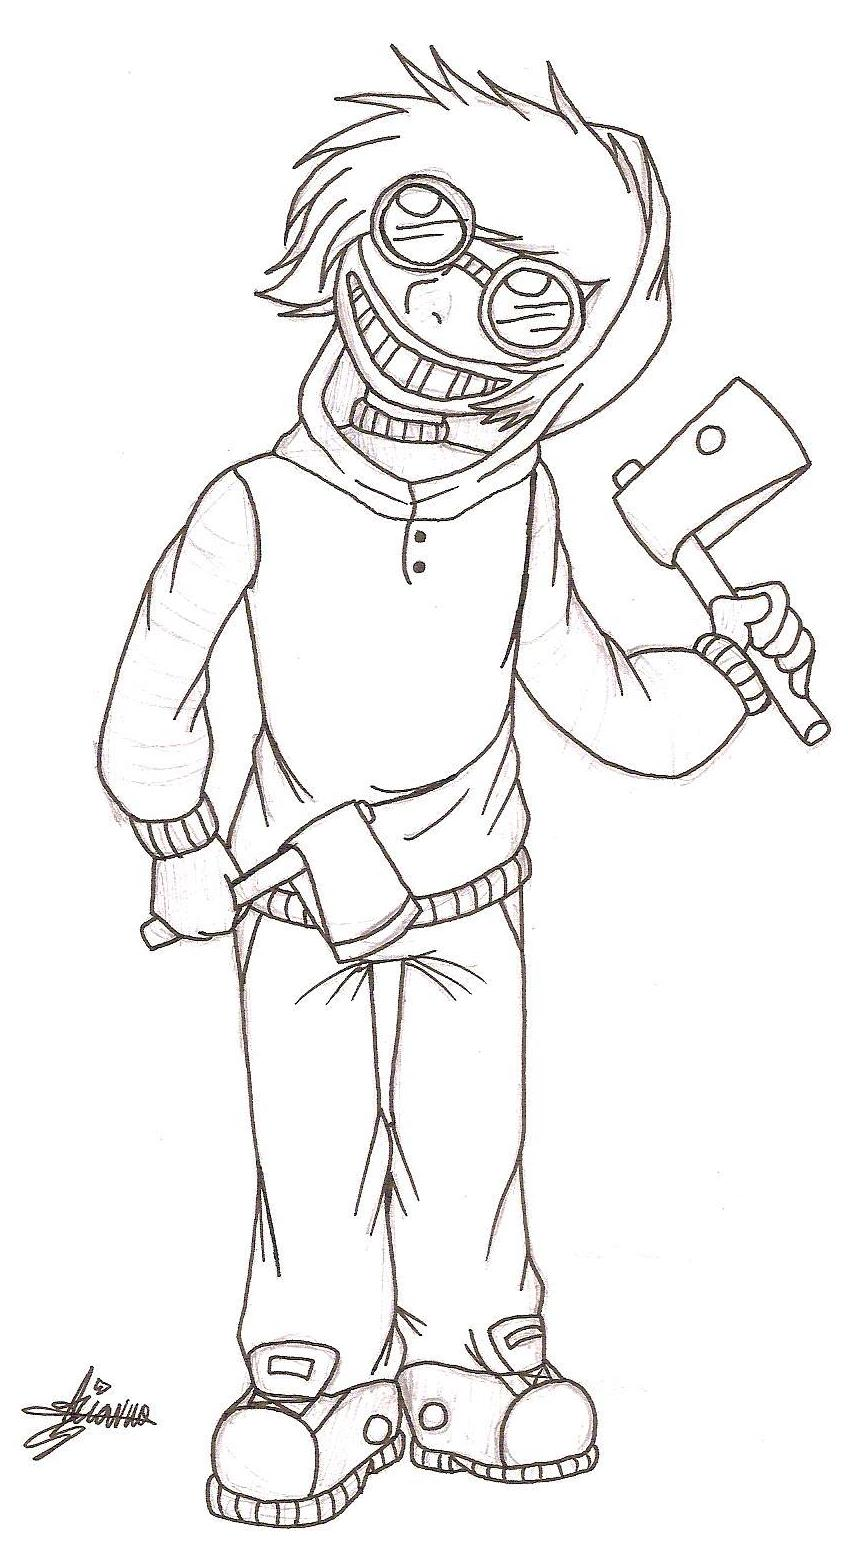 creepypasta coloring pages online - photo#1